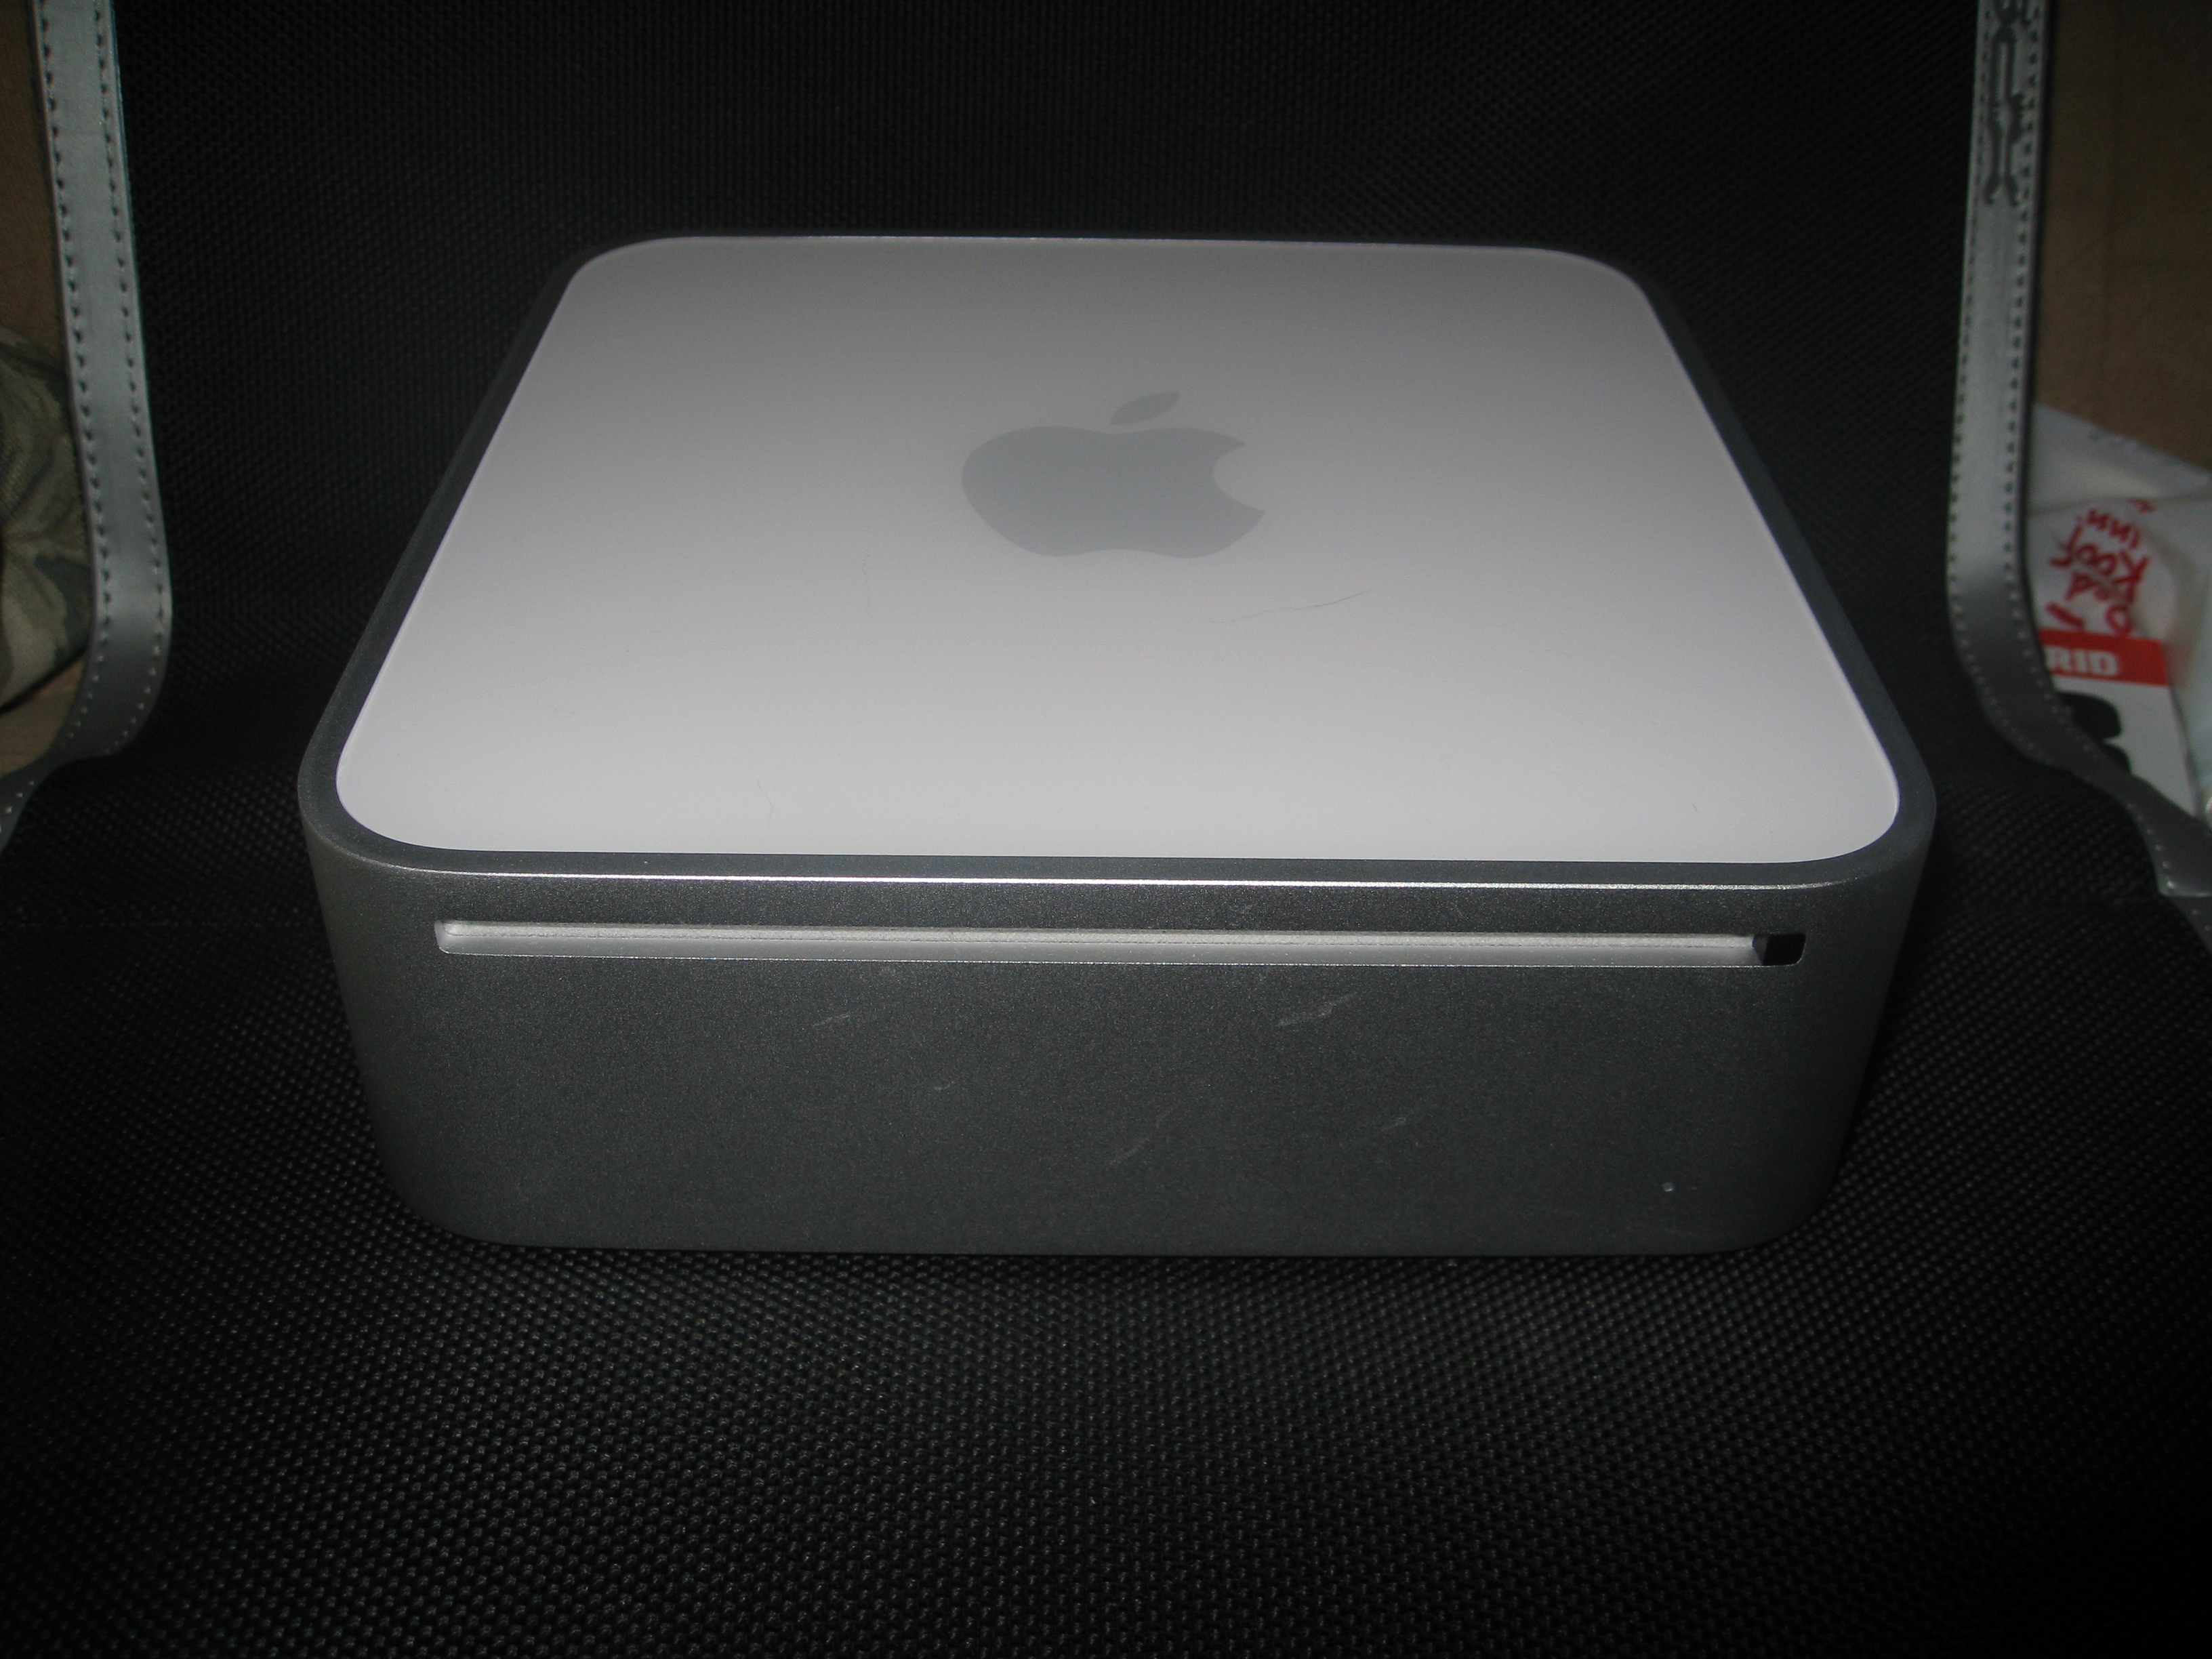 Mac Mini: Apple's Inexpensive Server